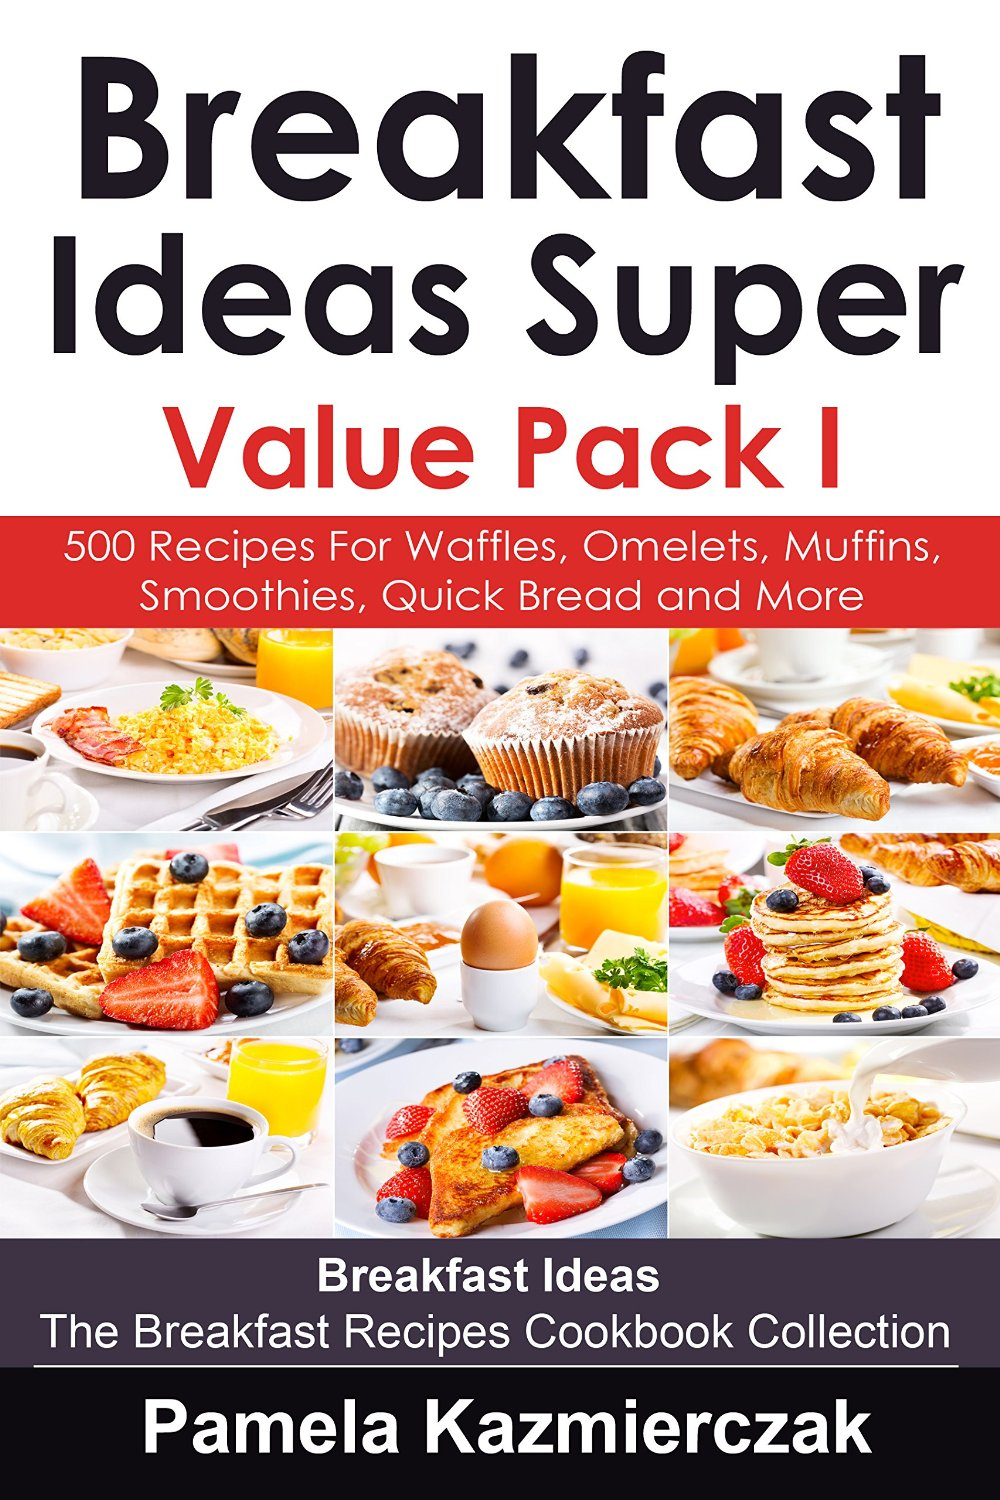 Breakfast Ideas Super Value Pack I - 500 Recipes For Waffles, Omelets, Muffins, Smoothies, Quick Bread and More free download